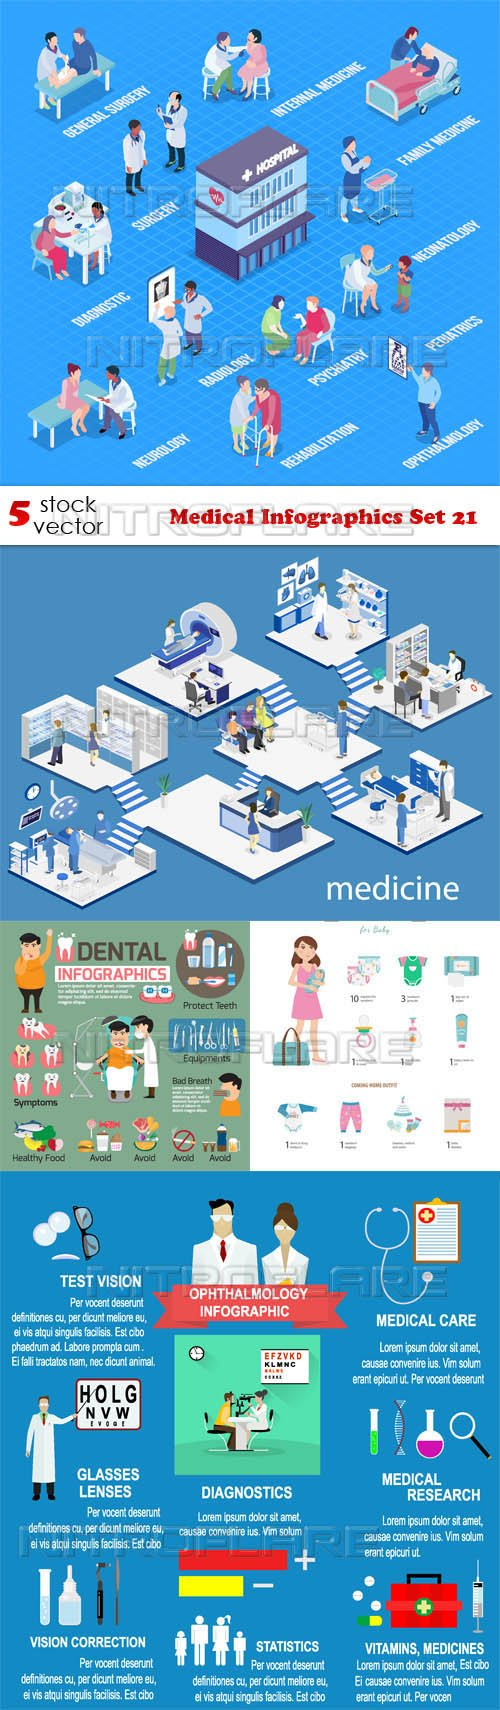 Vectors - Medical Infographics Set 21